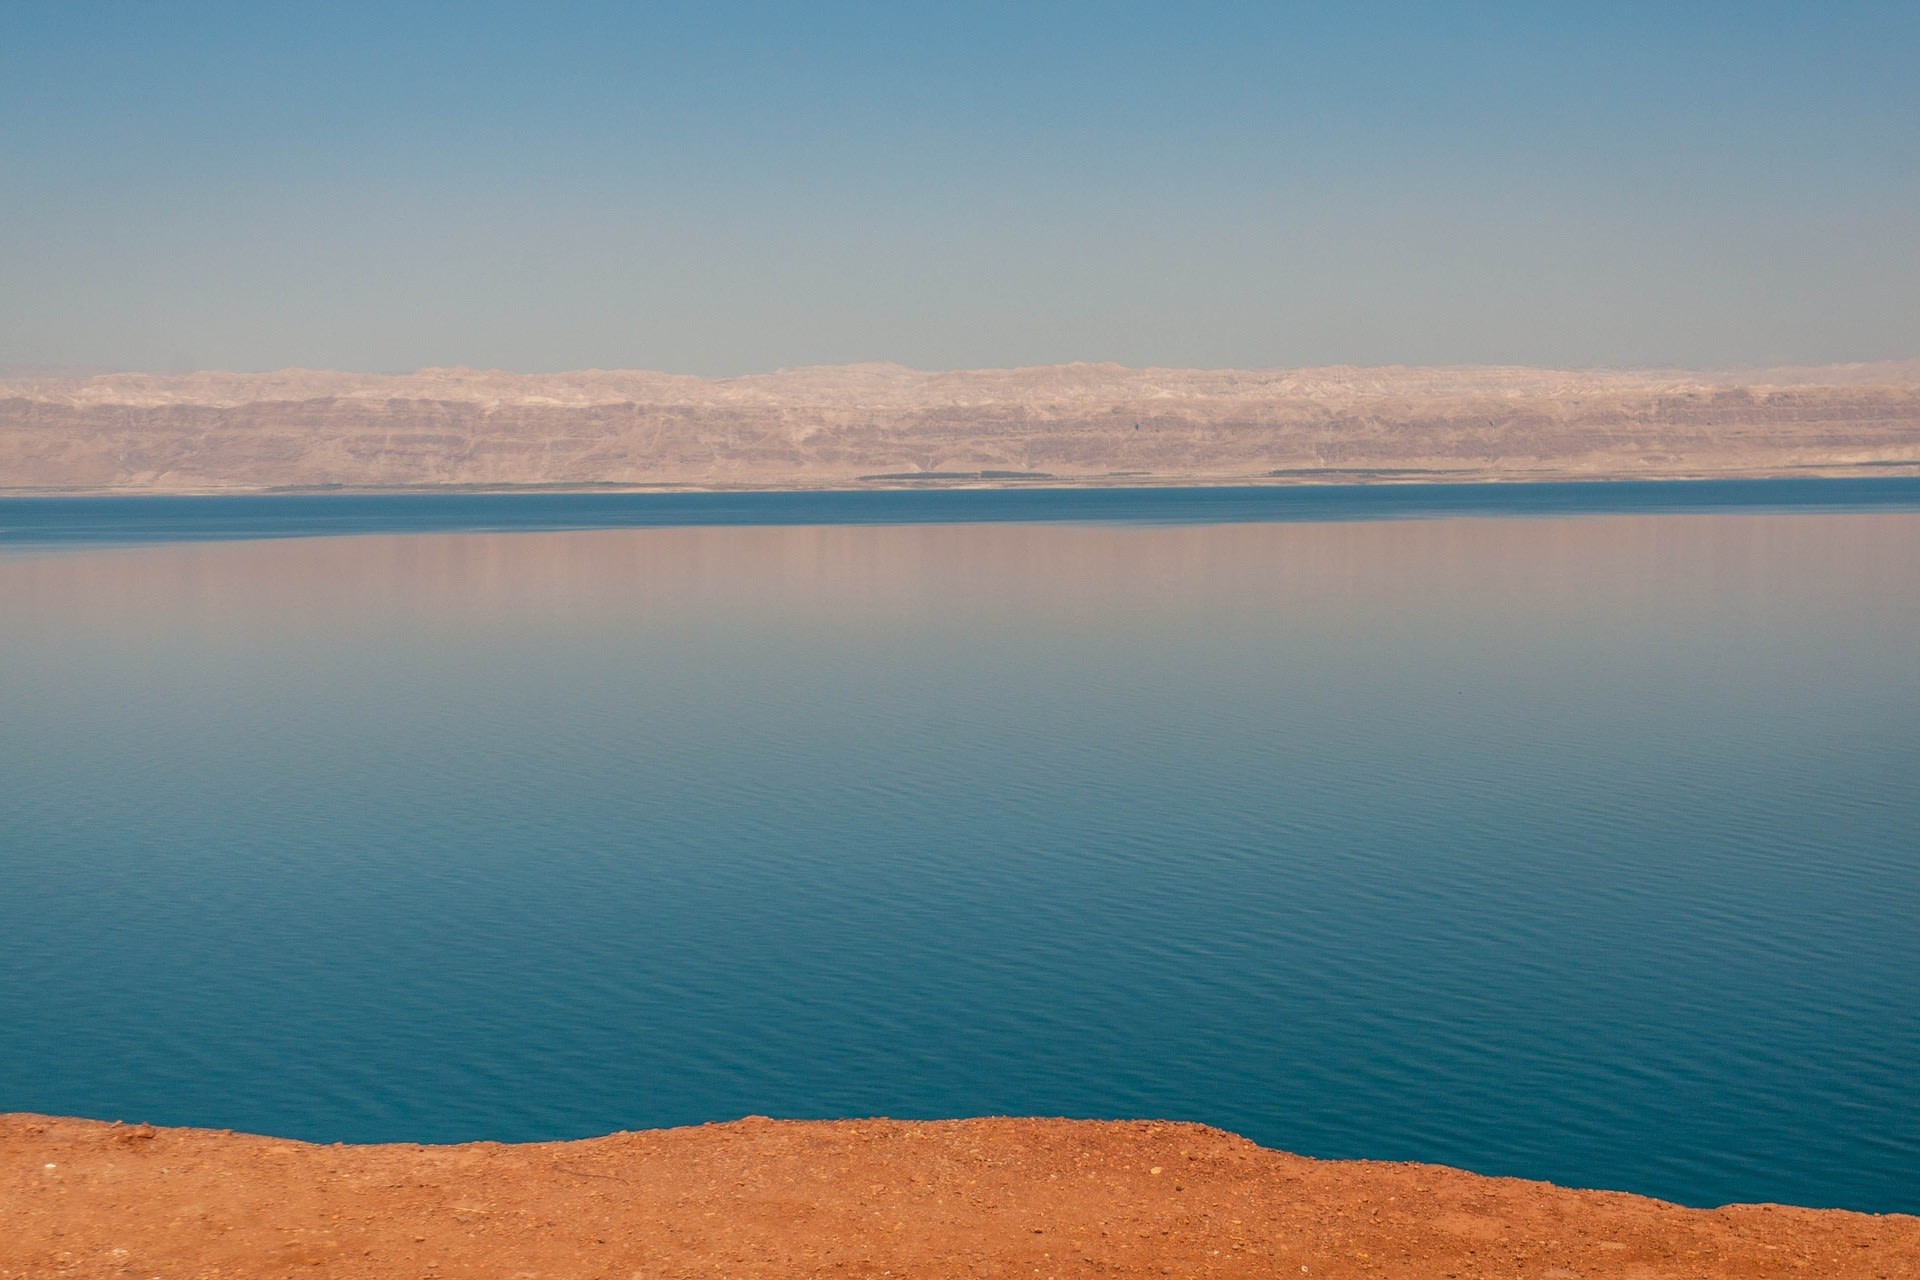 The Dead Sea View